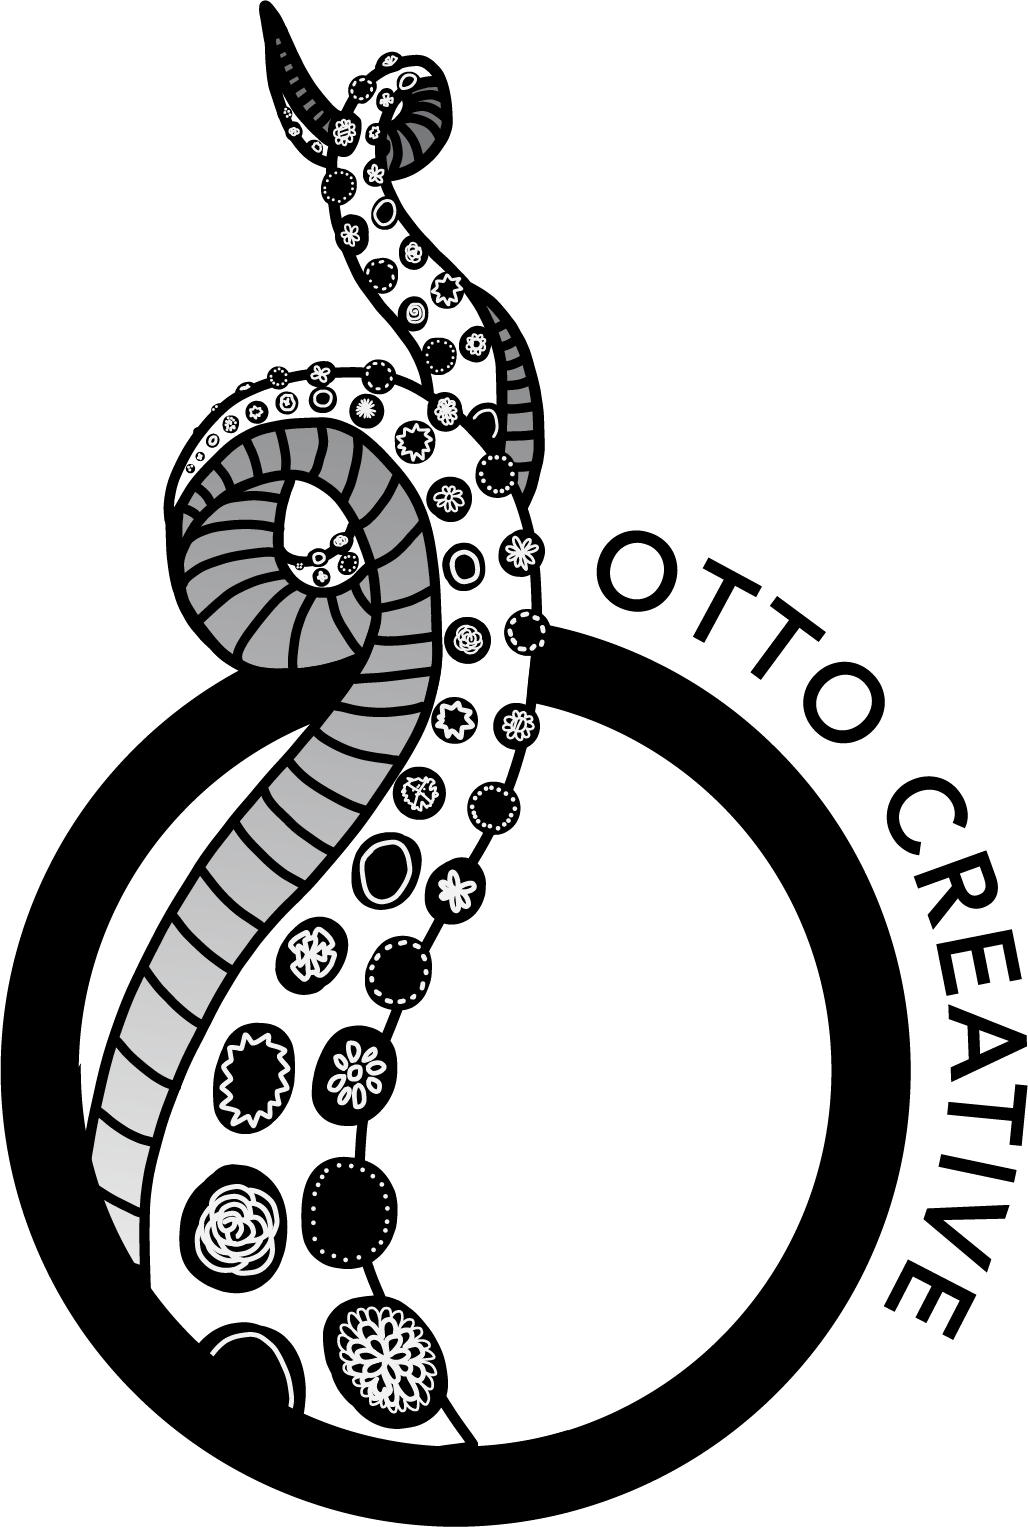 graphic library download Drawing pain creative. Otto art studio graphic